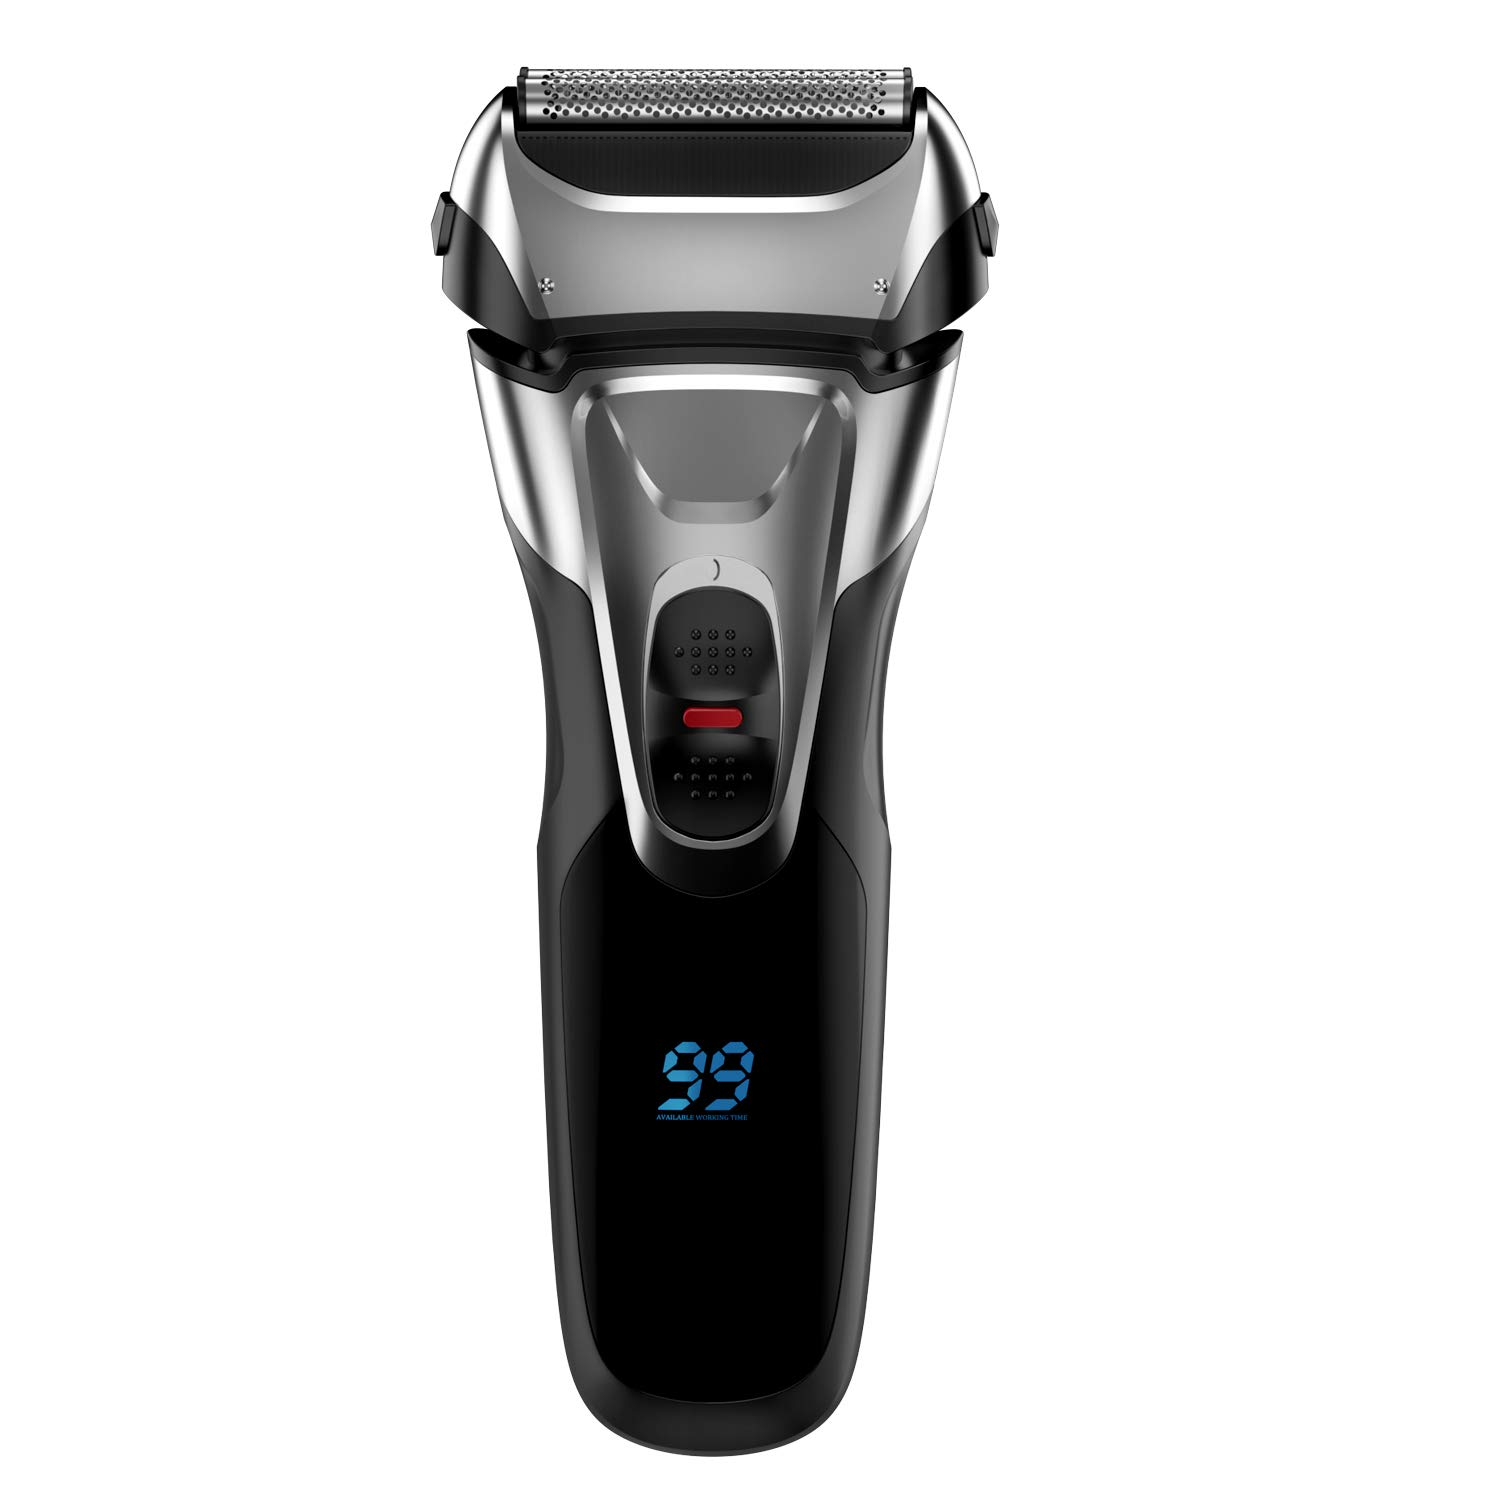 Electric Shaver with Trimmer for Men, IPX7 Waterproof Wet Dry Cordless Razor, Charge 1.5H Work 99 Mins, Plug and Play, USB Quick Rechargeable LCD Display Battery Price: $32.99